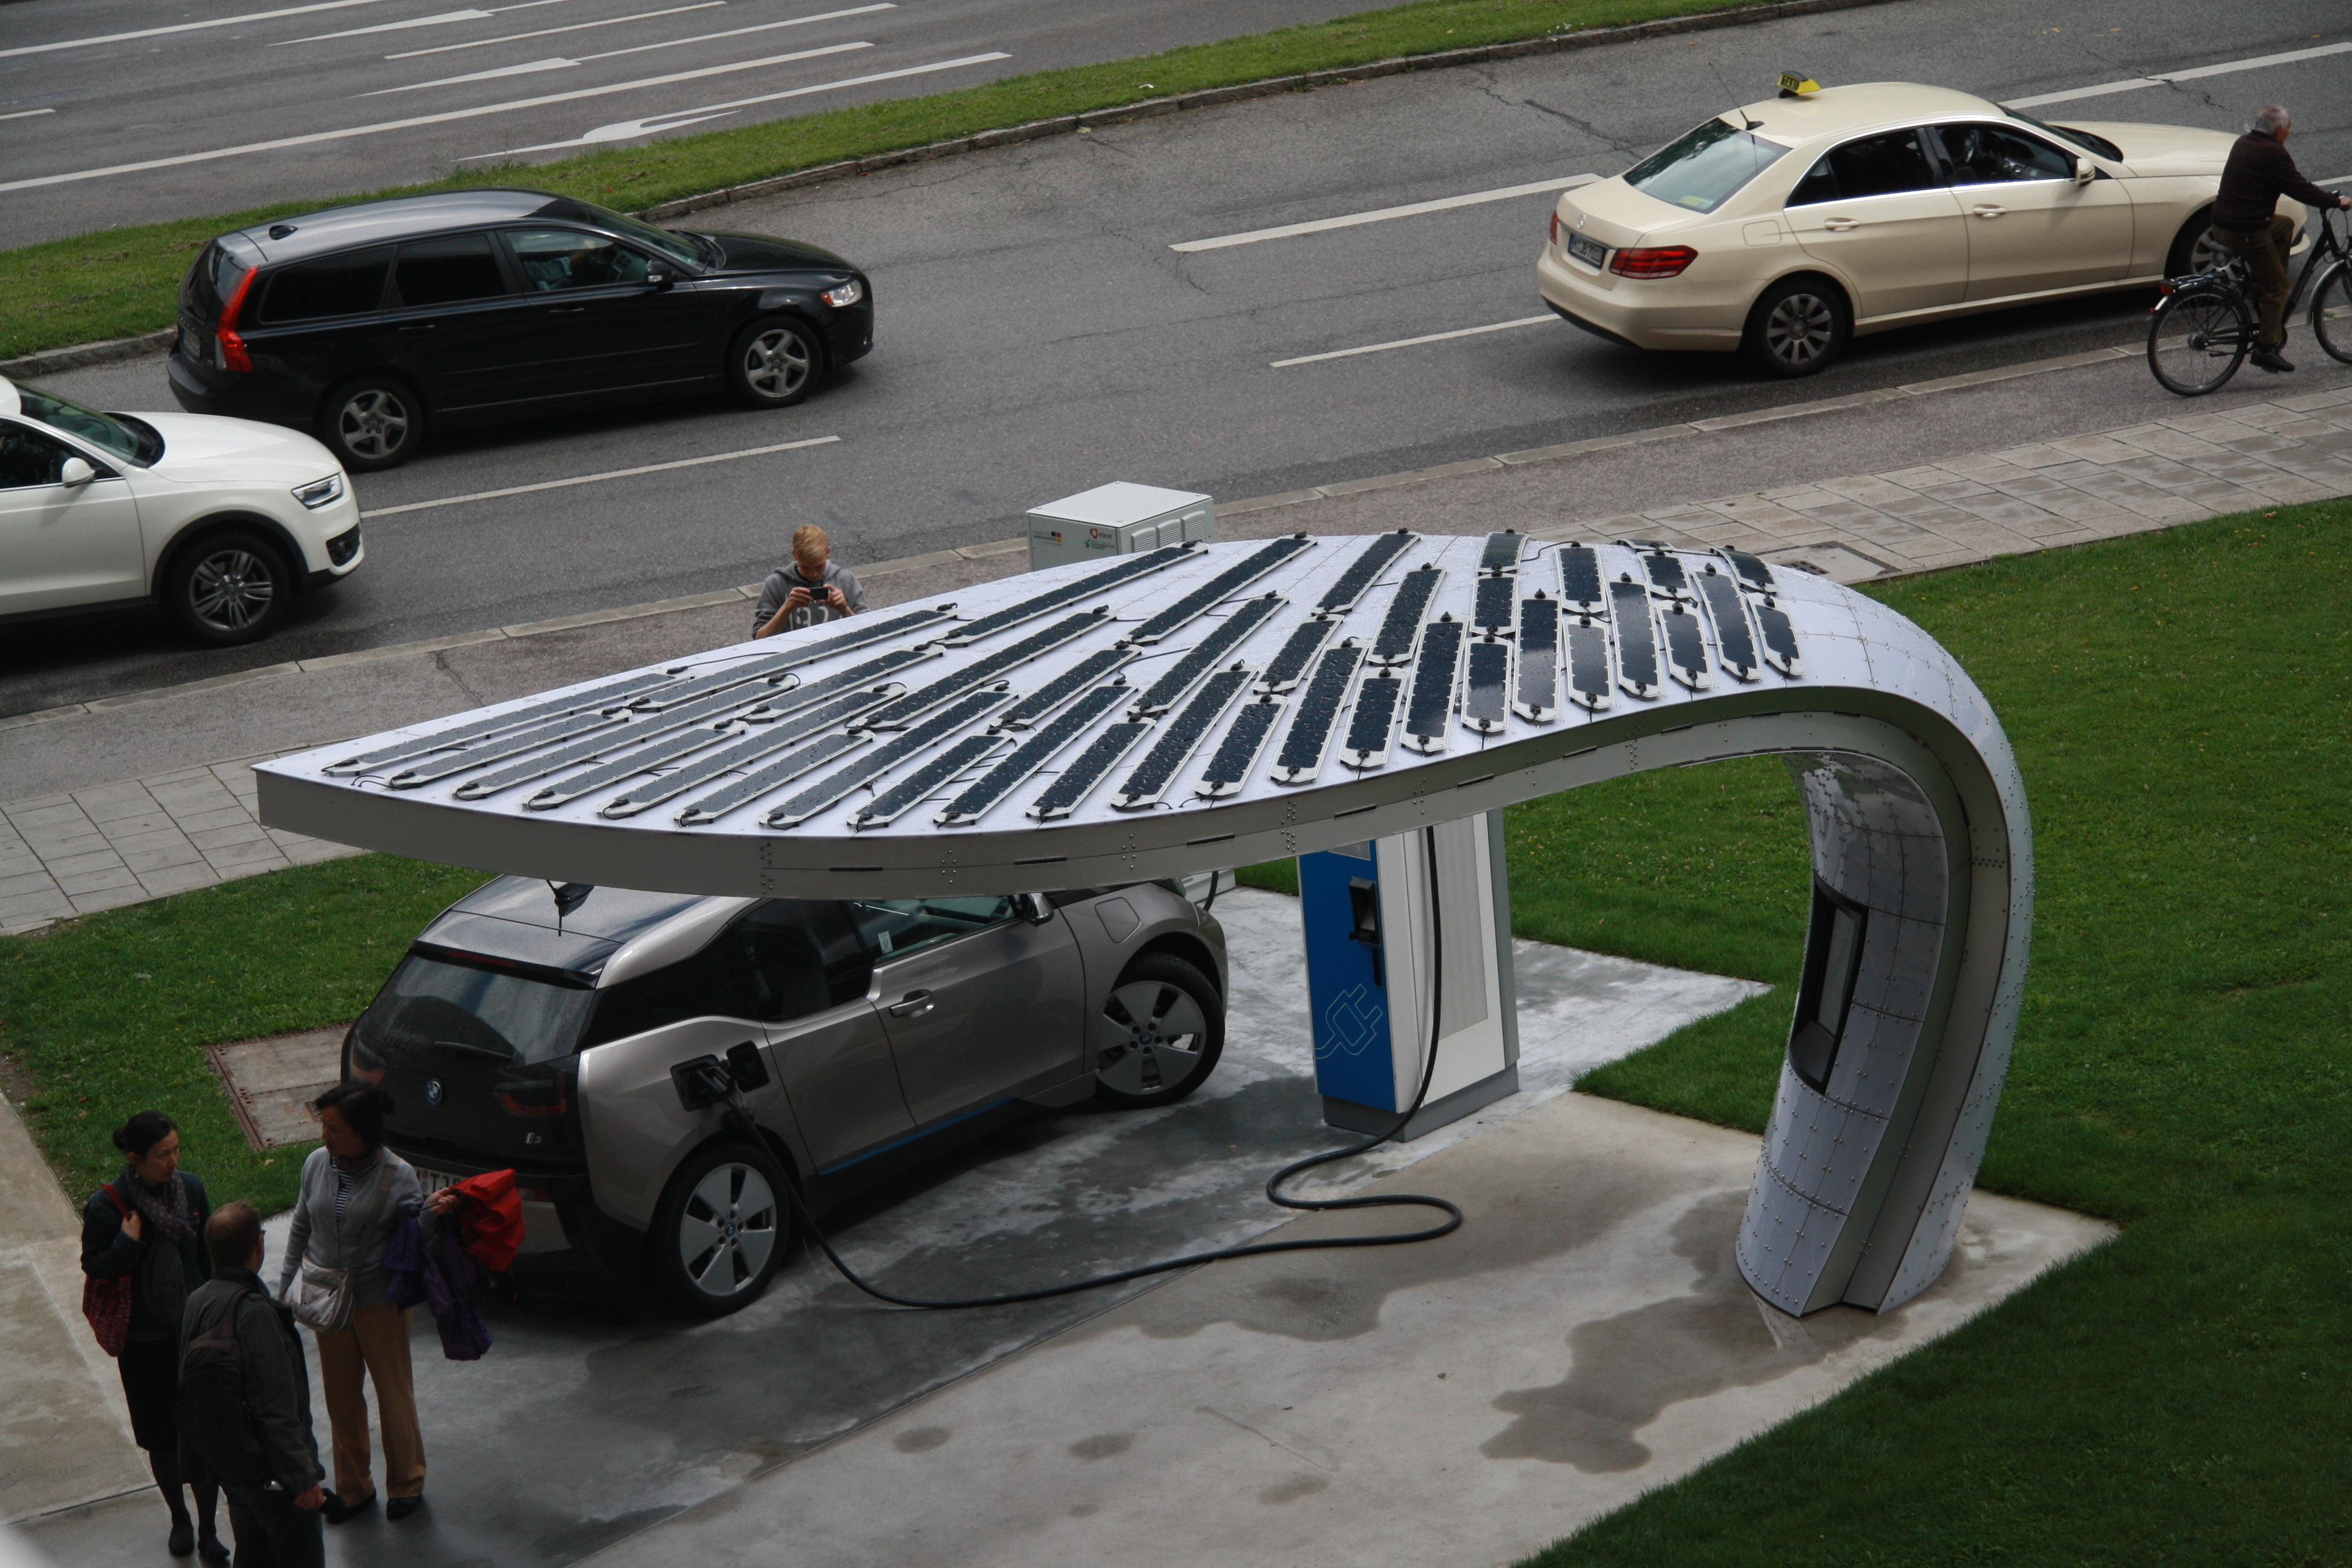 file solar car charger near bmw headquarters in munich bayern jpg wikimedia commons. Black Bedroom Furniture Sets. Home Design Ideas